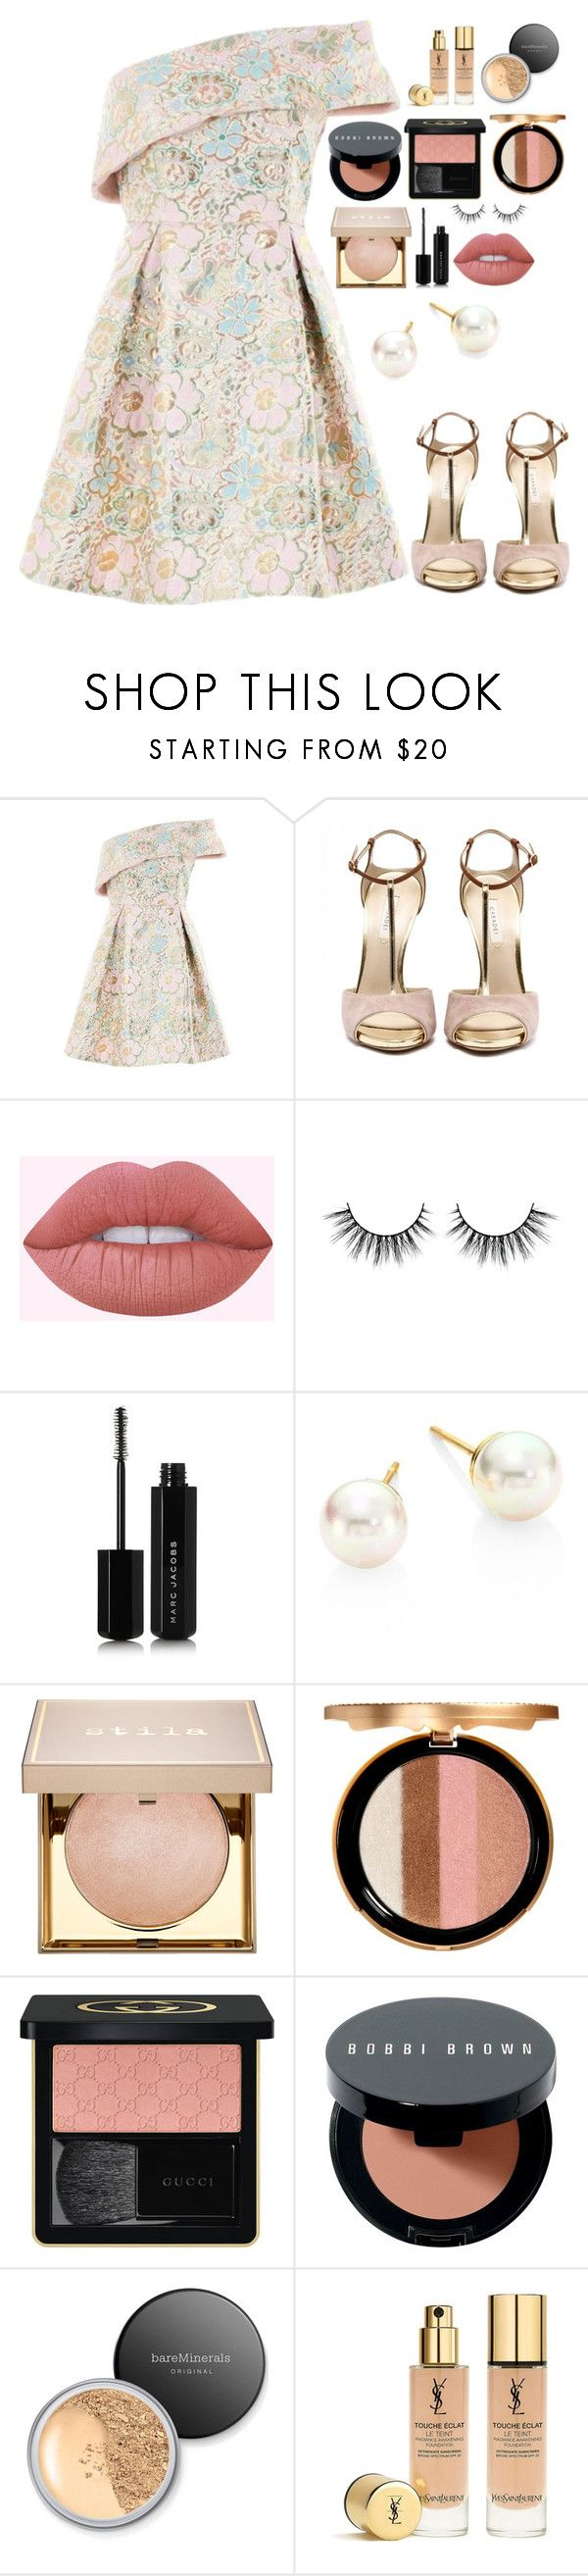 """""""Untitled #8701"""" by gabriellewidger ❤ liked on Polyvore featuring Topshop, Lime Crime, Marc Jacobs, Majorica, Stila, Too Faced Cosmetics, Gucci, Bobbi Brown Cosmetics, Bare Escentuals and Yves Saint Laurent"""